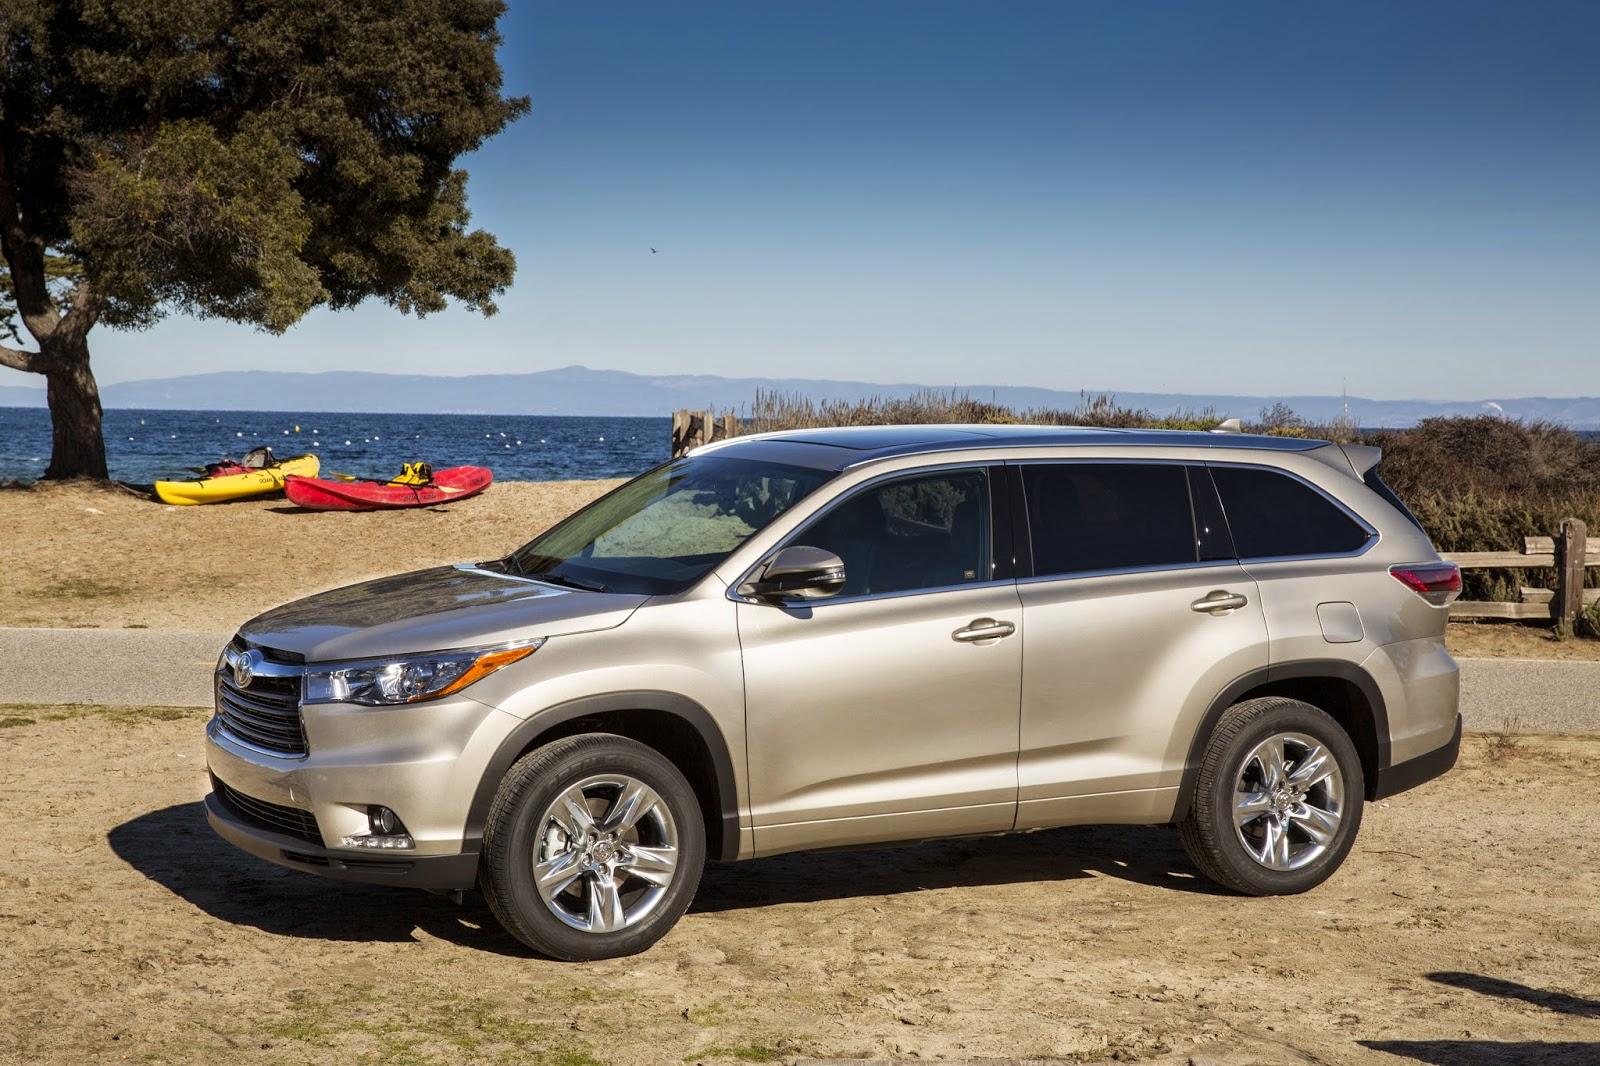 2014 Toyota Highlander Limited: Home Run for Families